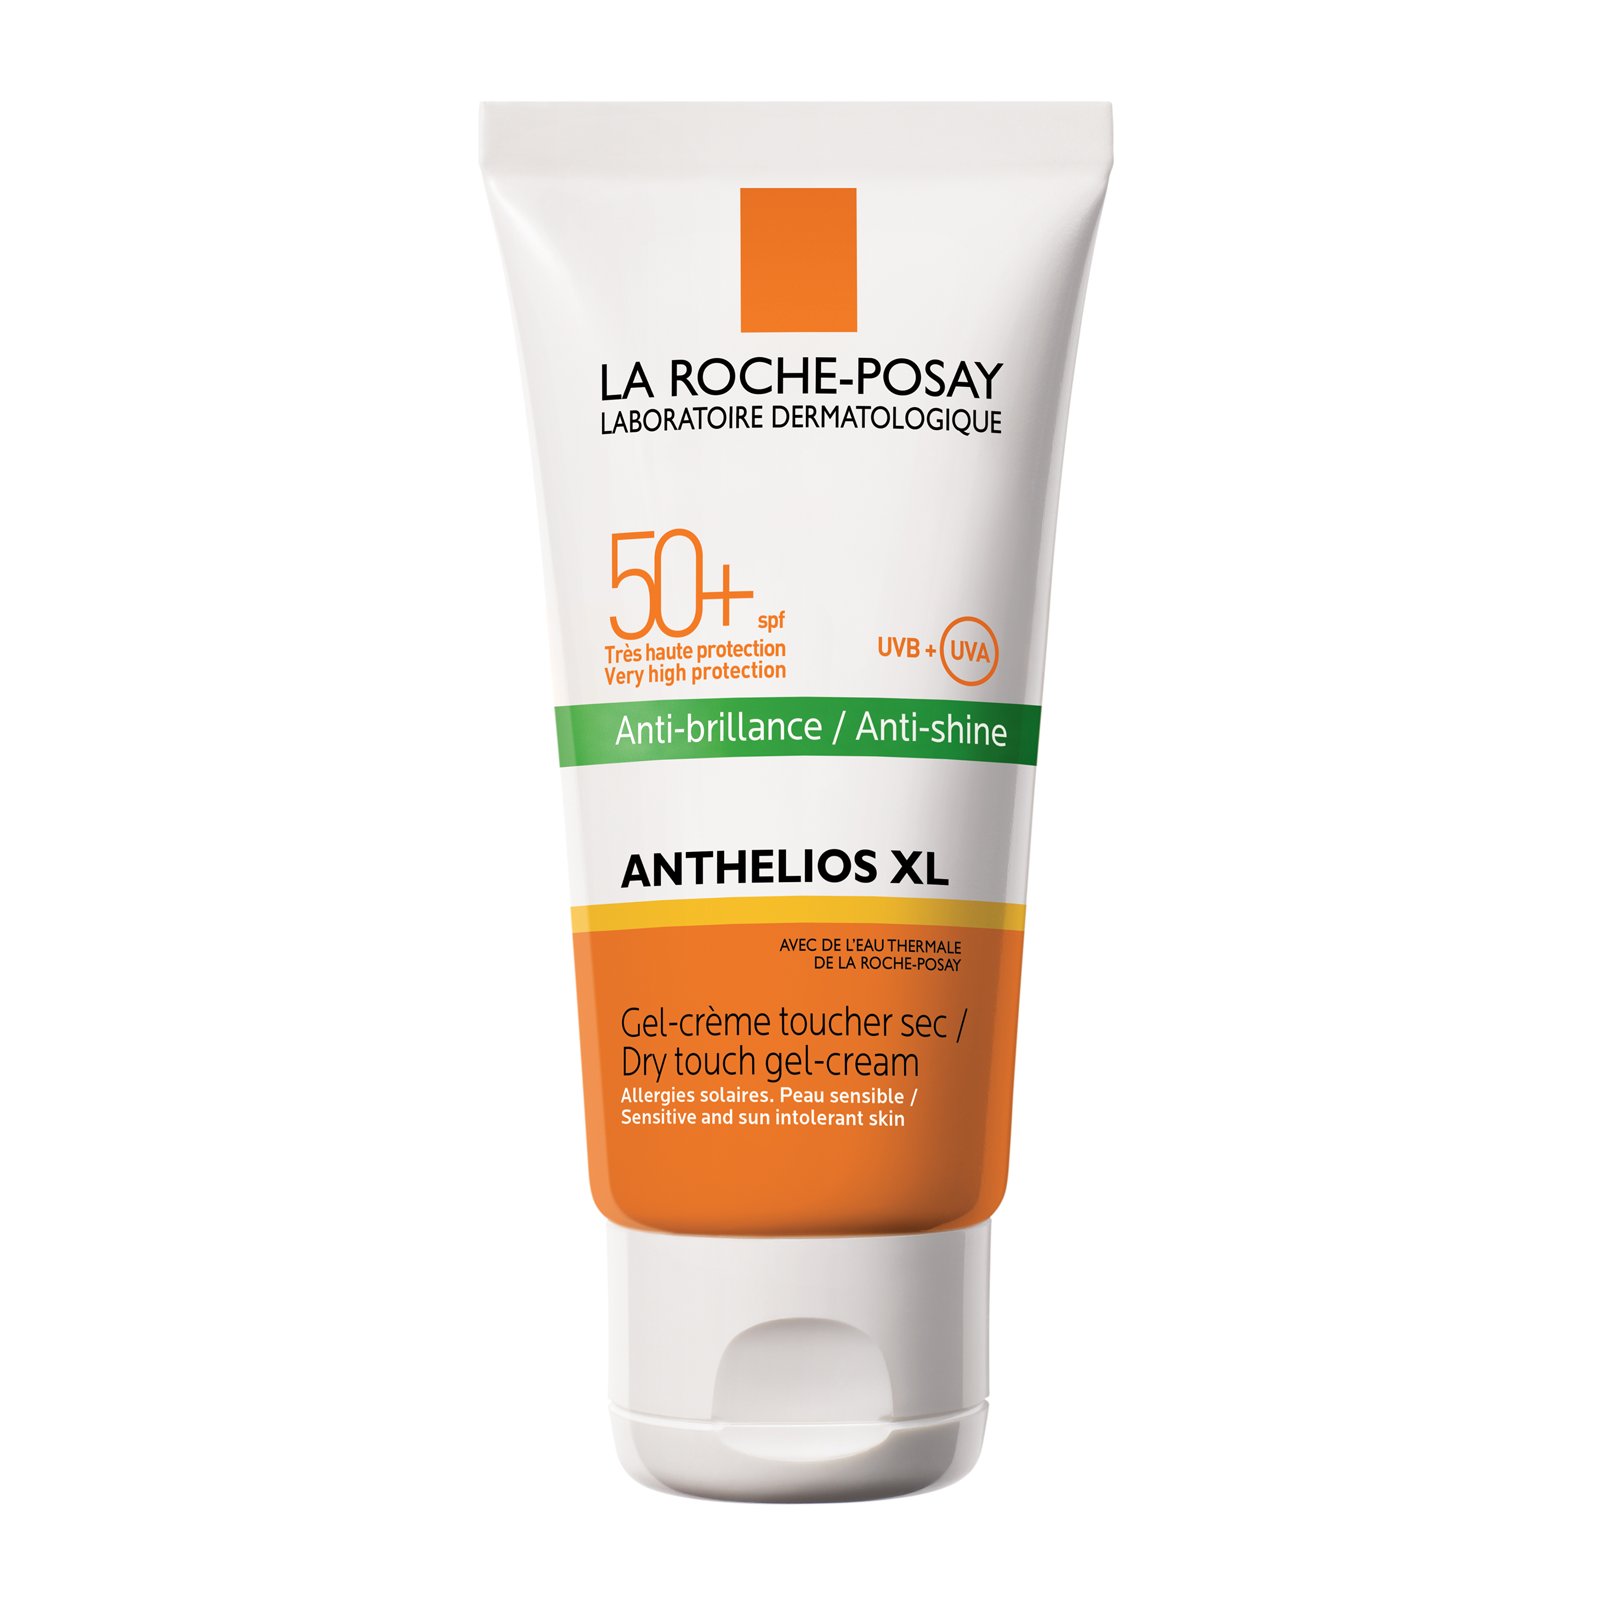 la-roche-posay-anthelios-xl-%ce%bc%ce%b5-spf-50-dry-touch